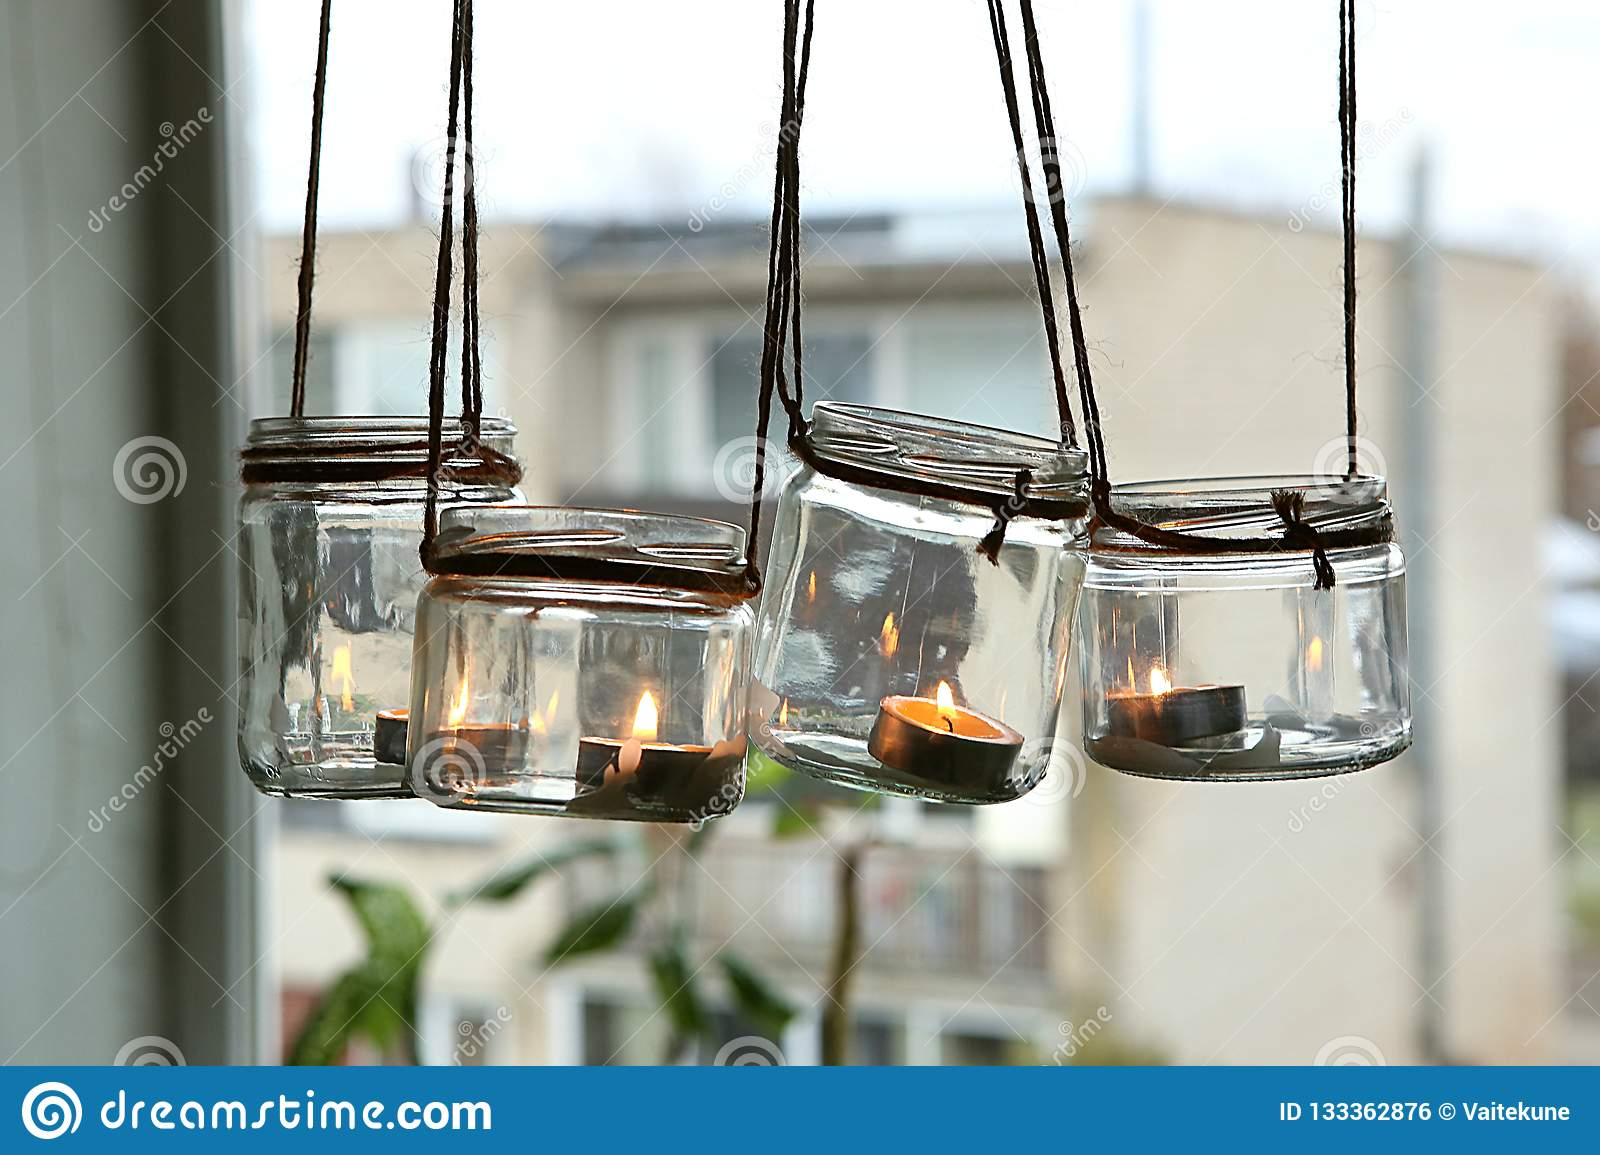 Aromatic Candles In Glass Jars Hanging In Kitchen Stock Photo